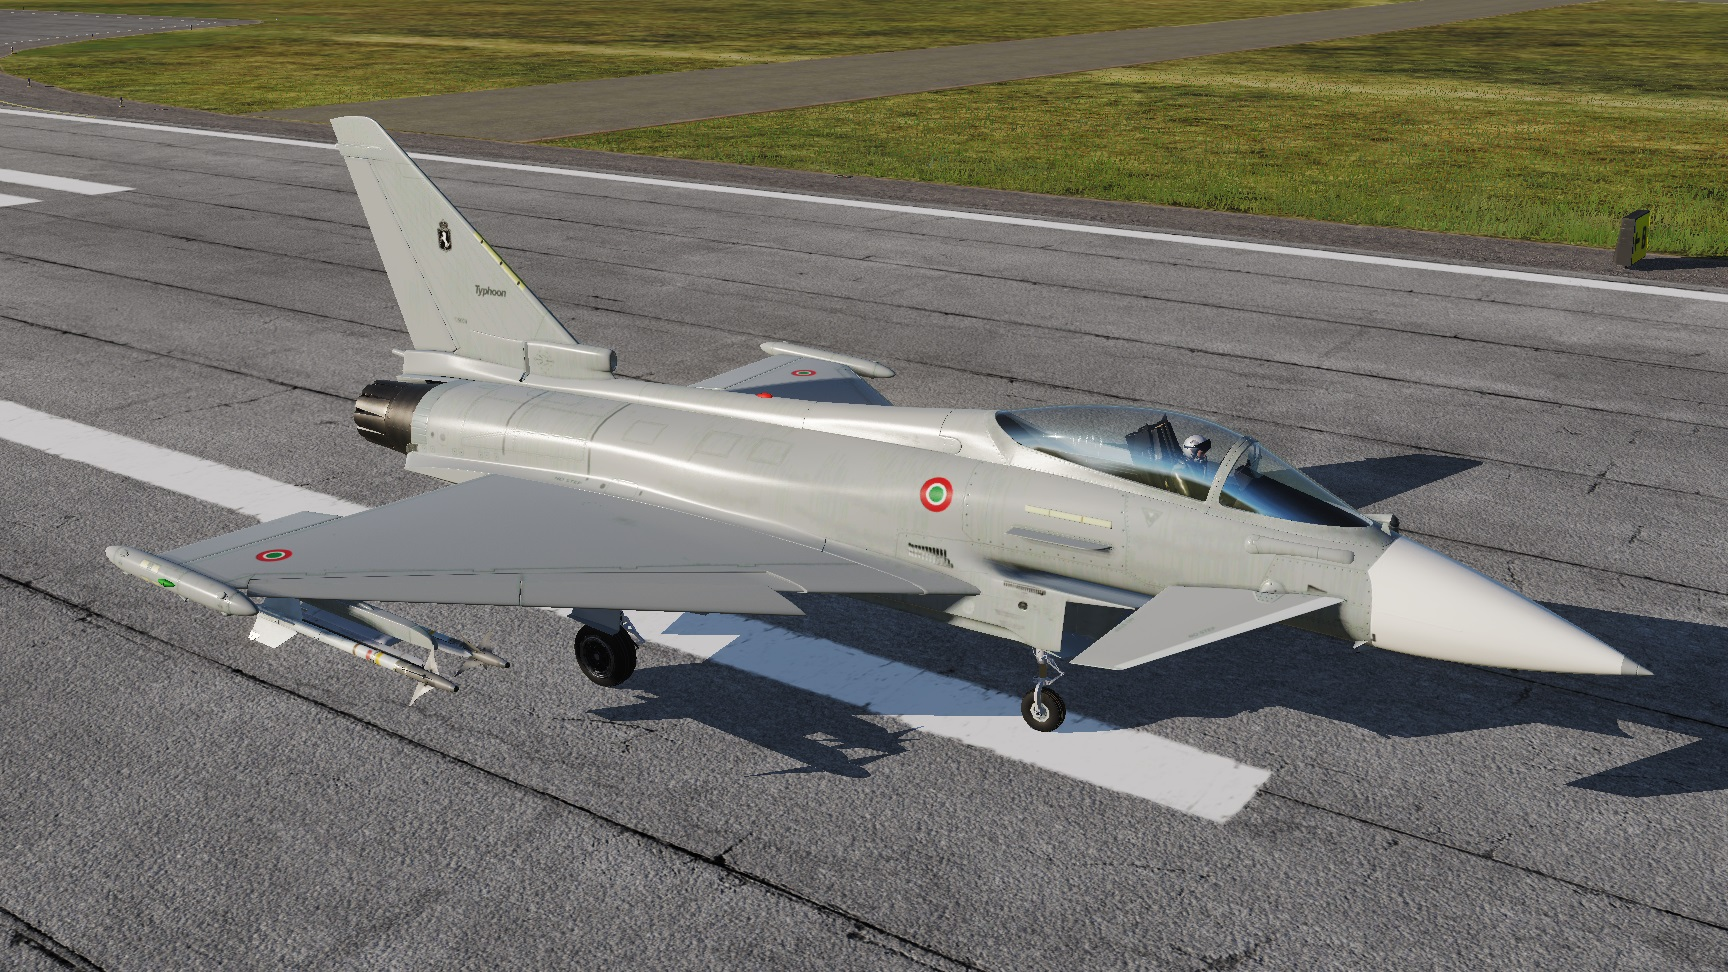 Italian Air Force Eurofighter